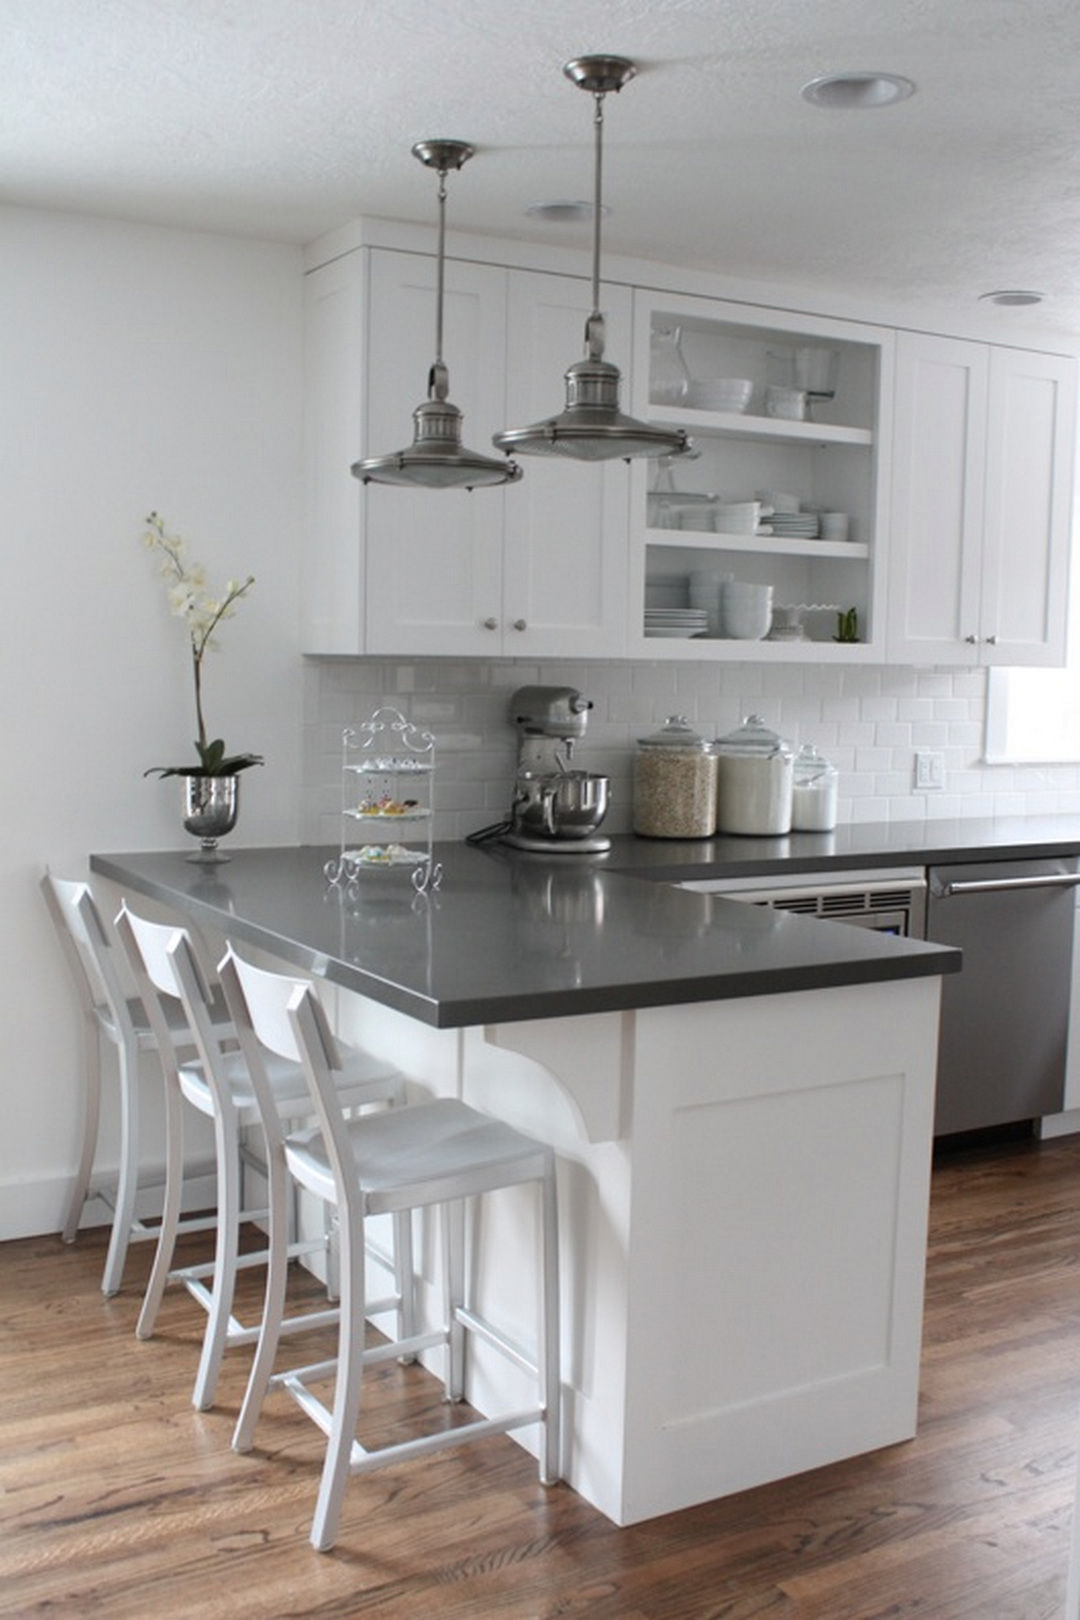 53 Pretty White Kitchen Design Ideas | Gorgeous Interior Ideas ... on kitchen rugs ideas, kitchen wall space ideas, kitchen dining cabinets, family room room ideas, kitchen dining garden, kitchen breakfast room ideas, kitchen tv room ideas, kitchen dining fireplace, kitchen backyard ideas, kitchen mud room ideas, kitchen under stairs ideas, kitchen storage room ideas, kitchen library ideas, kitchen dining home, kitchen staircase ideas, kitchen breakfast counter ideas, kitchen back porch ideas, living room ideas, kitchen dining interior design, kitchen dining contemporary,